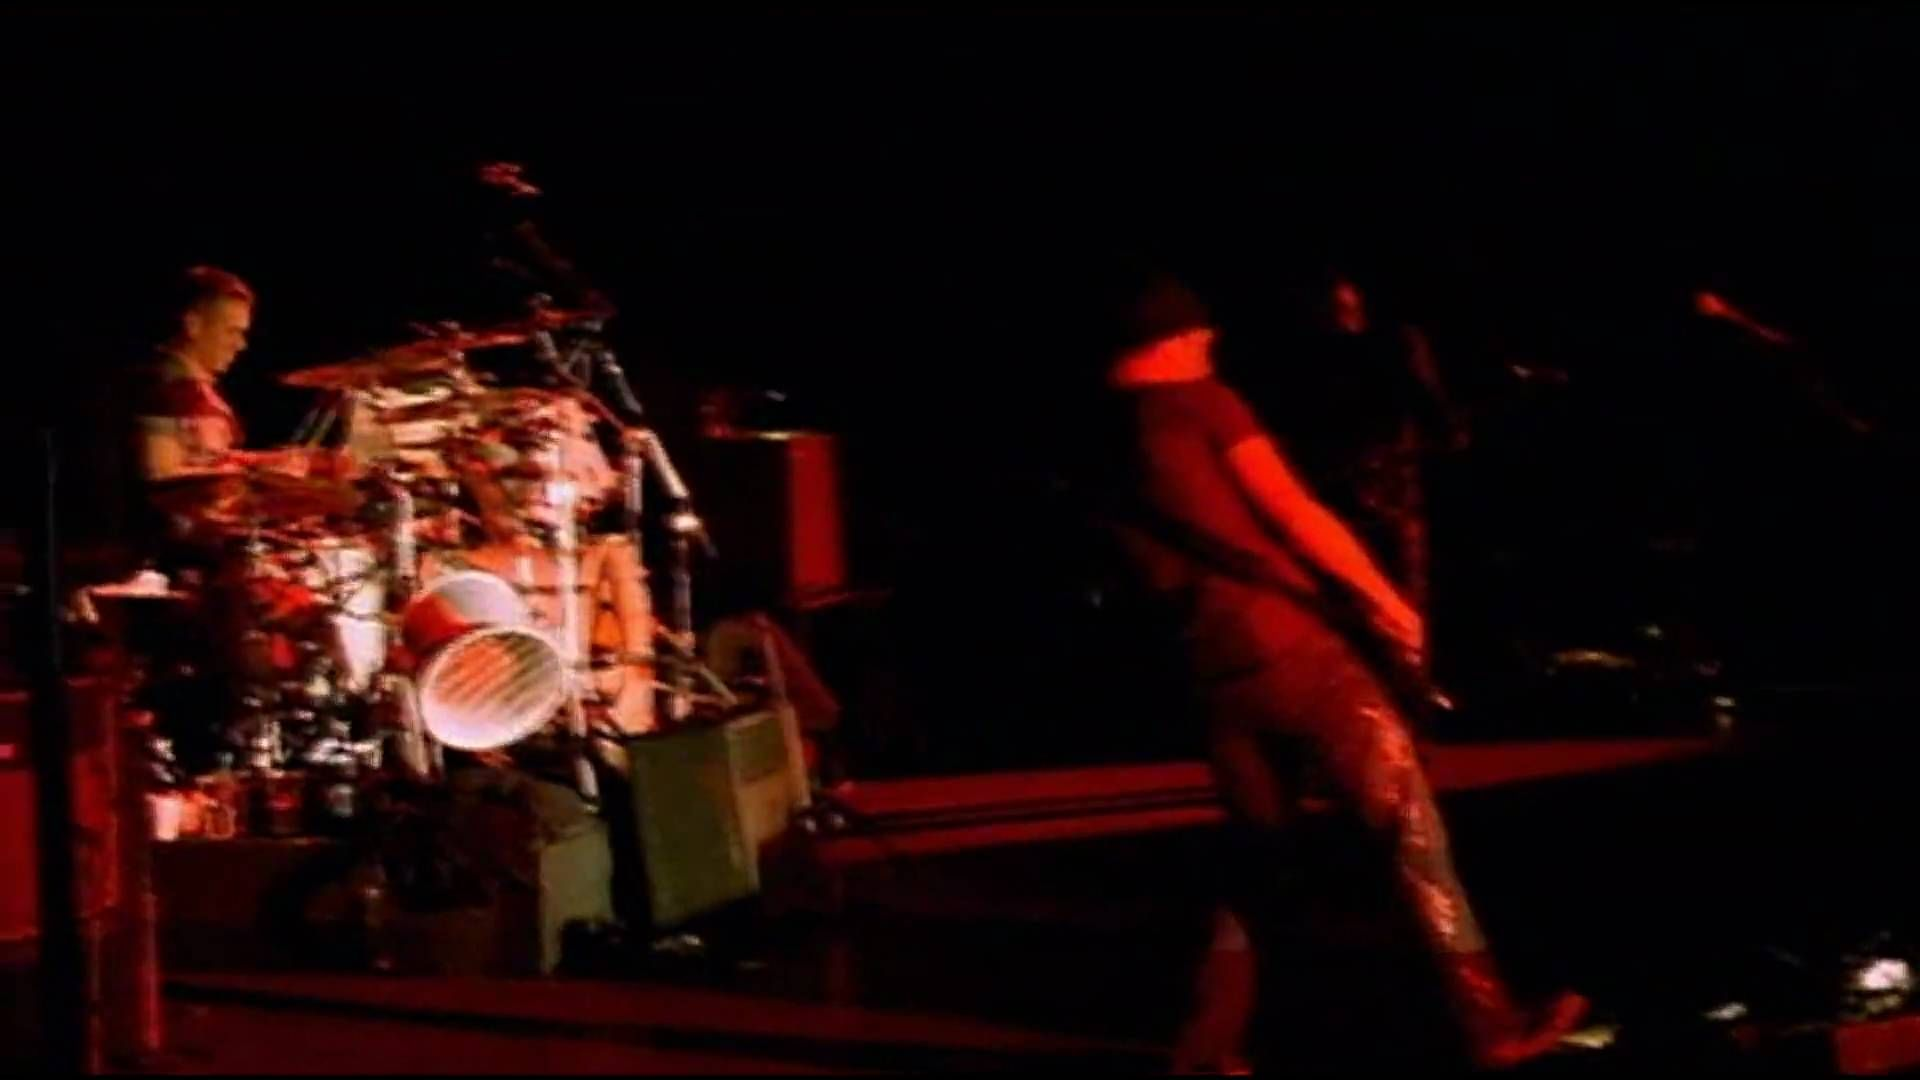 16 - U2 Bullet The Blue Sky (Slane Castle Live) HD | The